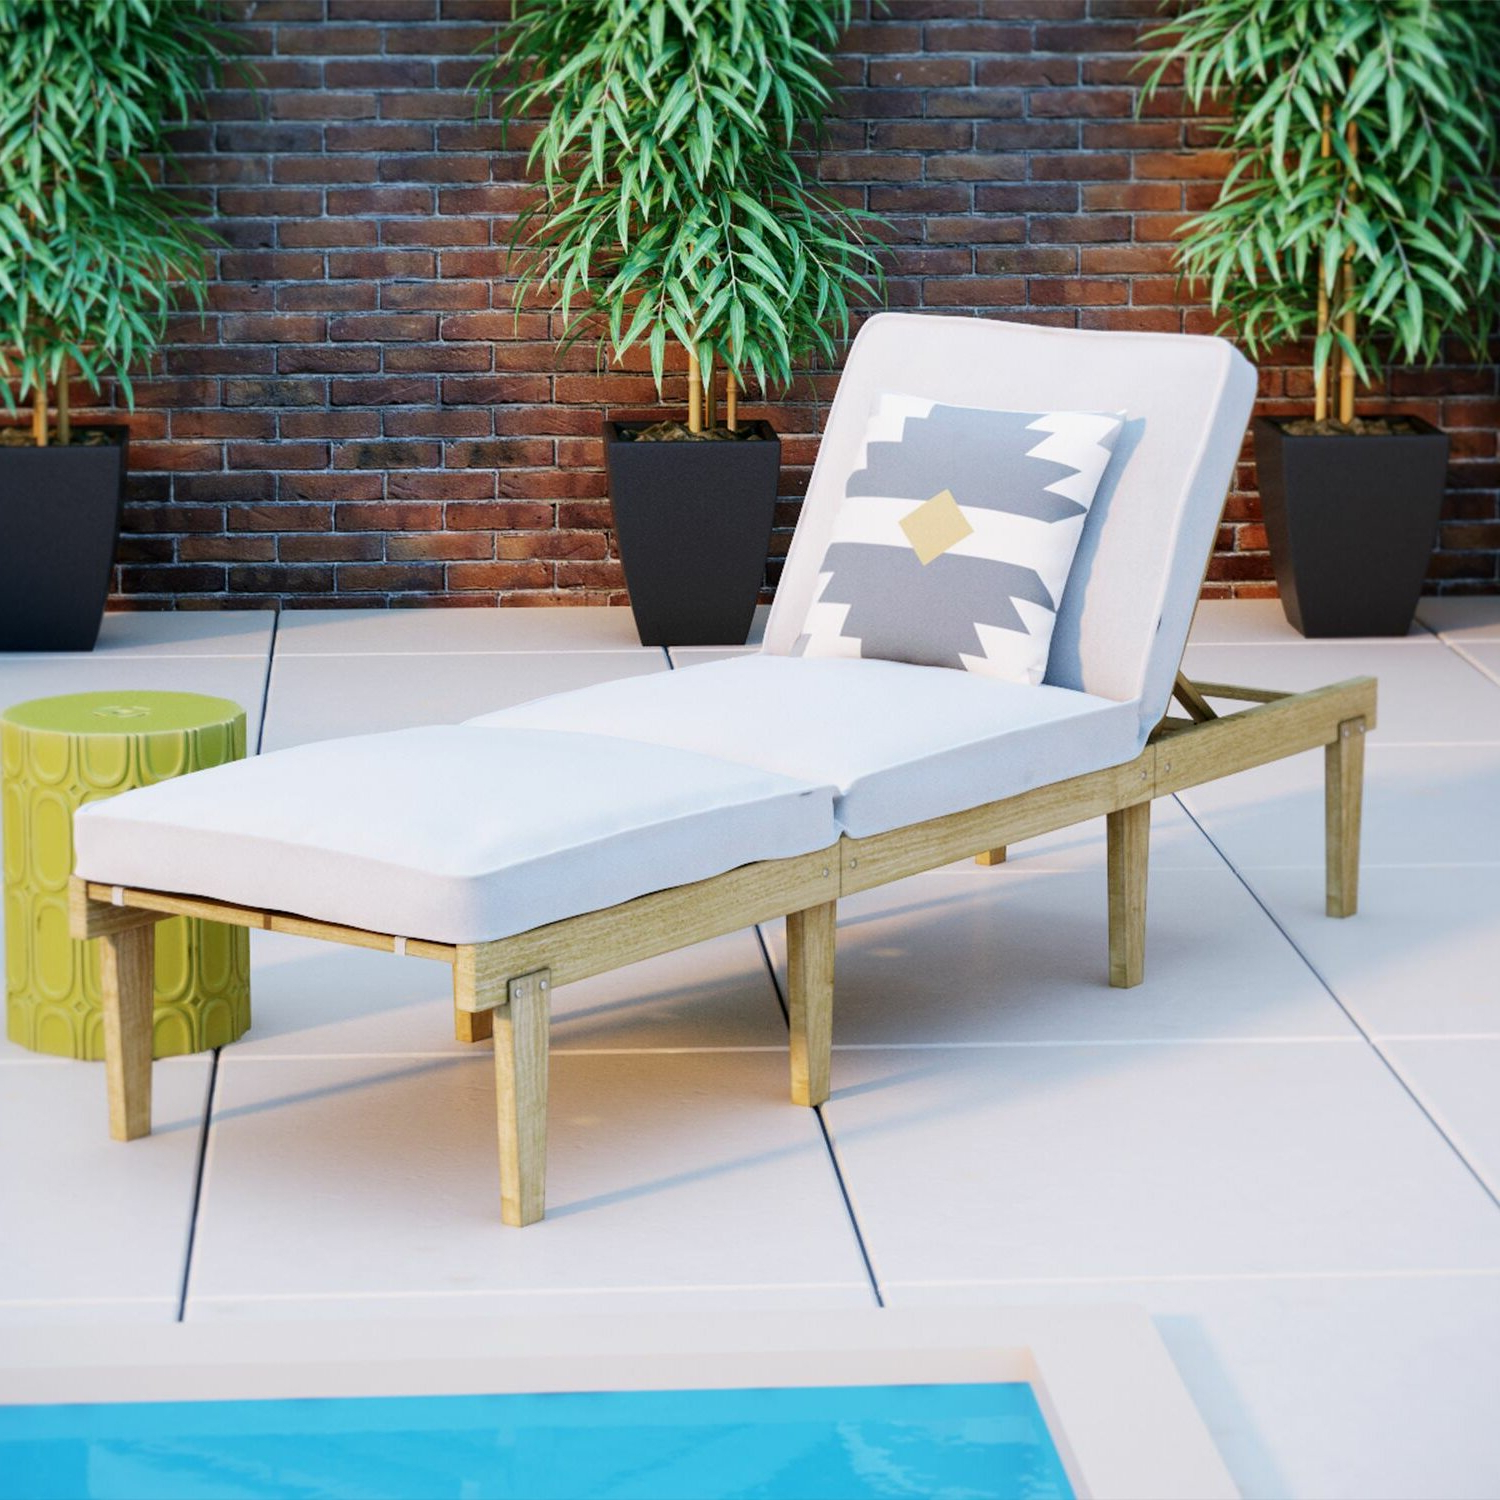 Ardsley Reclining Teak Chaise Lounge With Cushion For Current Oudoor Modern Acacia Wood Chaise Lounges With Cushion (Gallery 13 of 25)